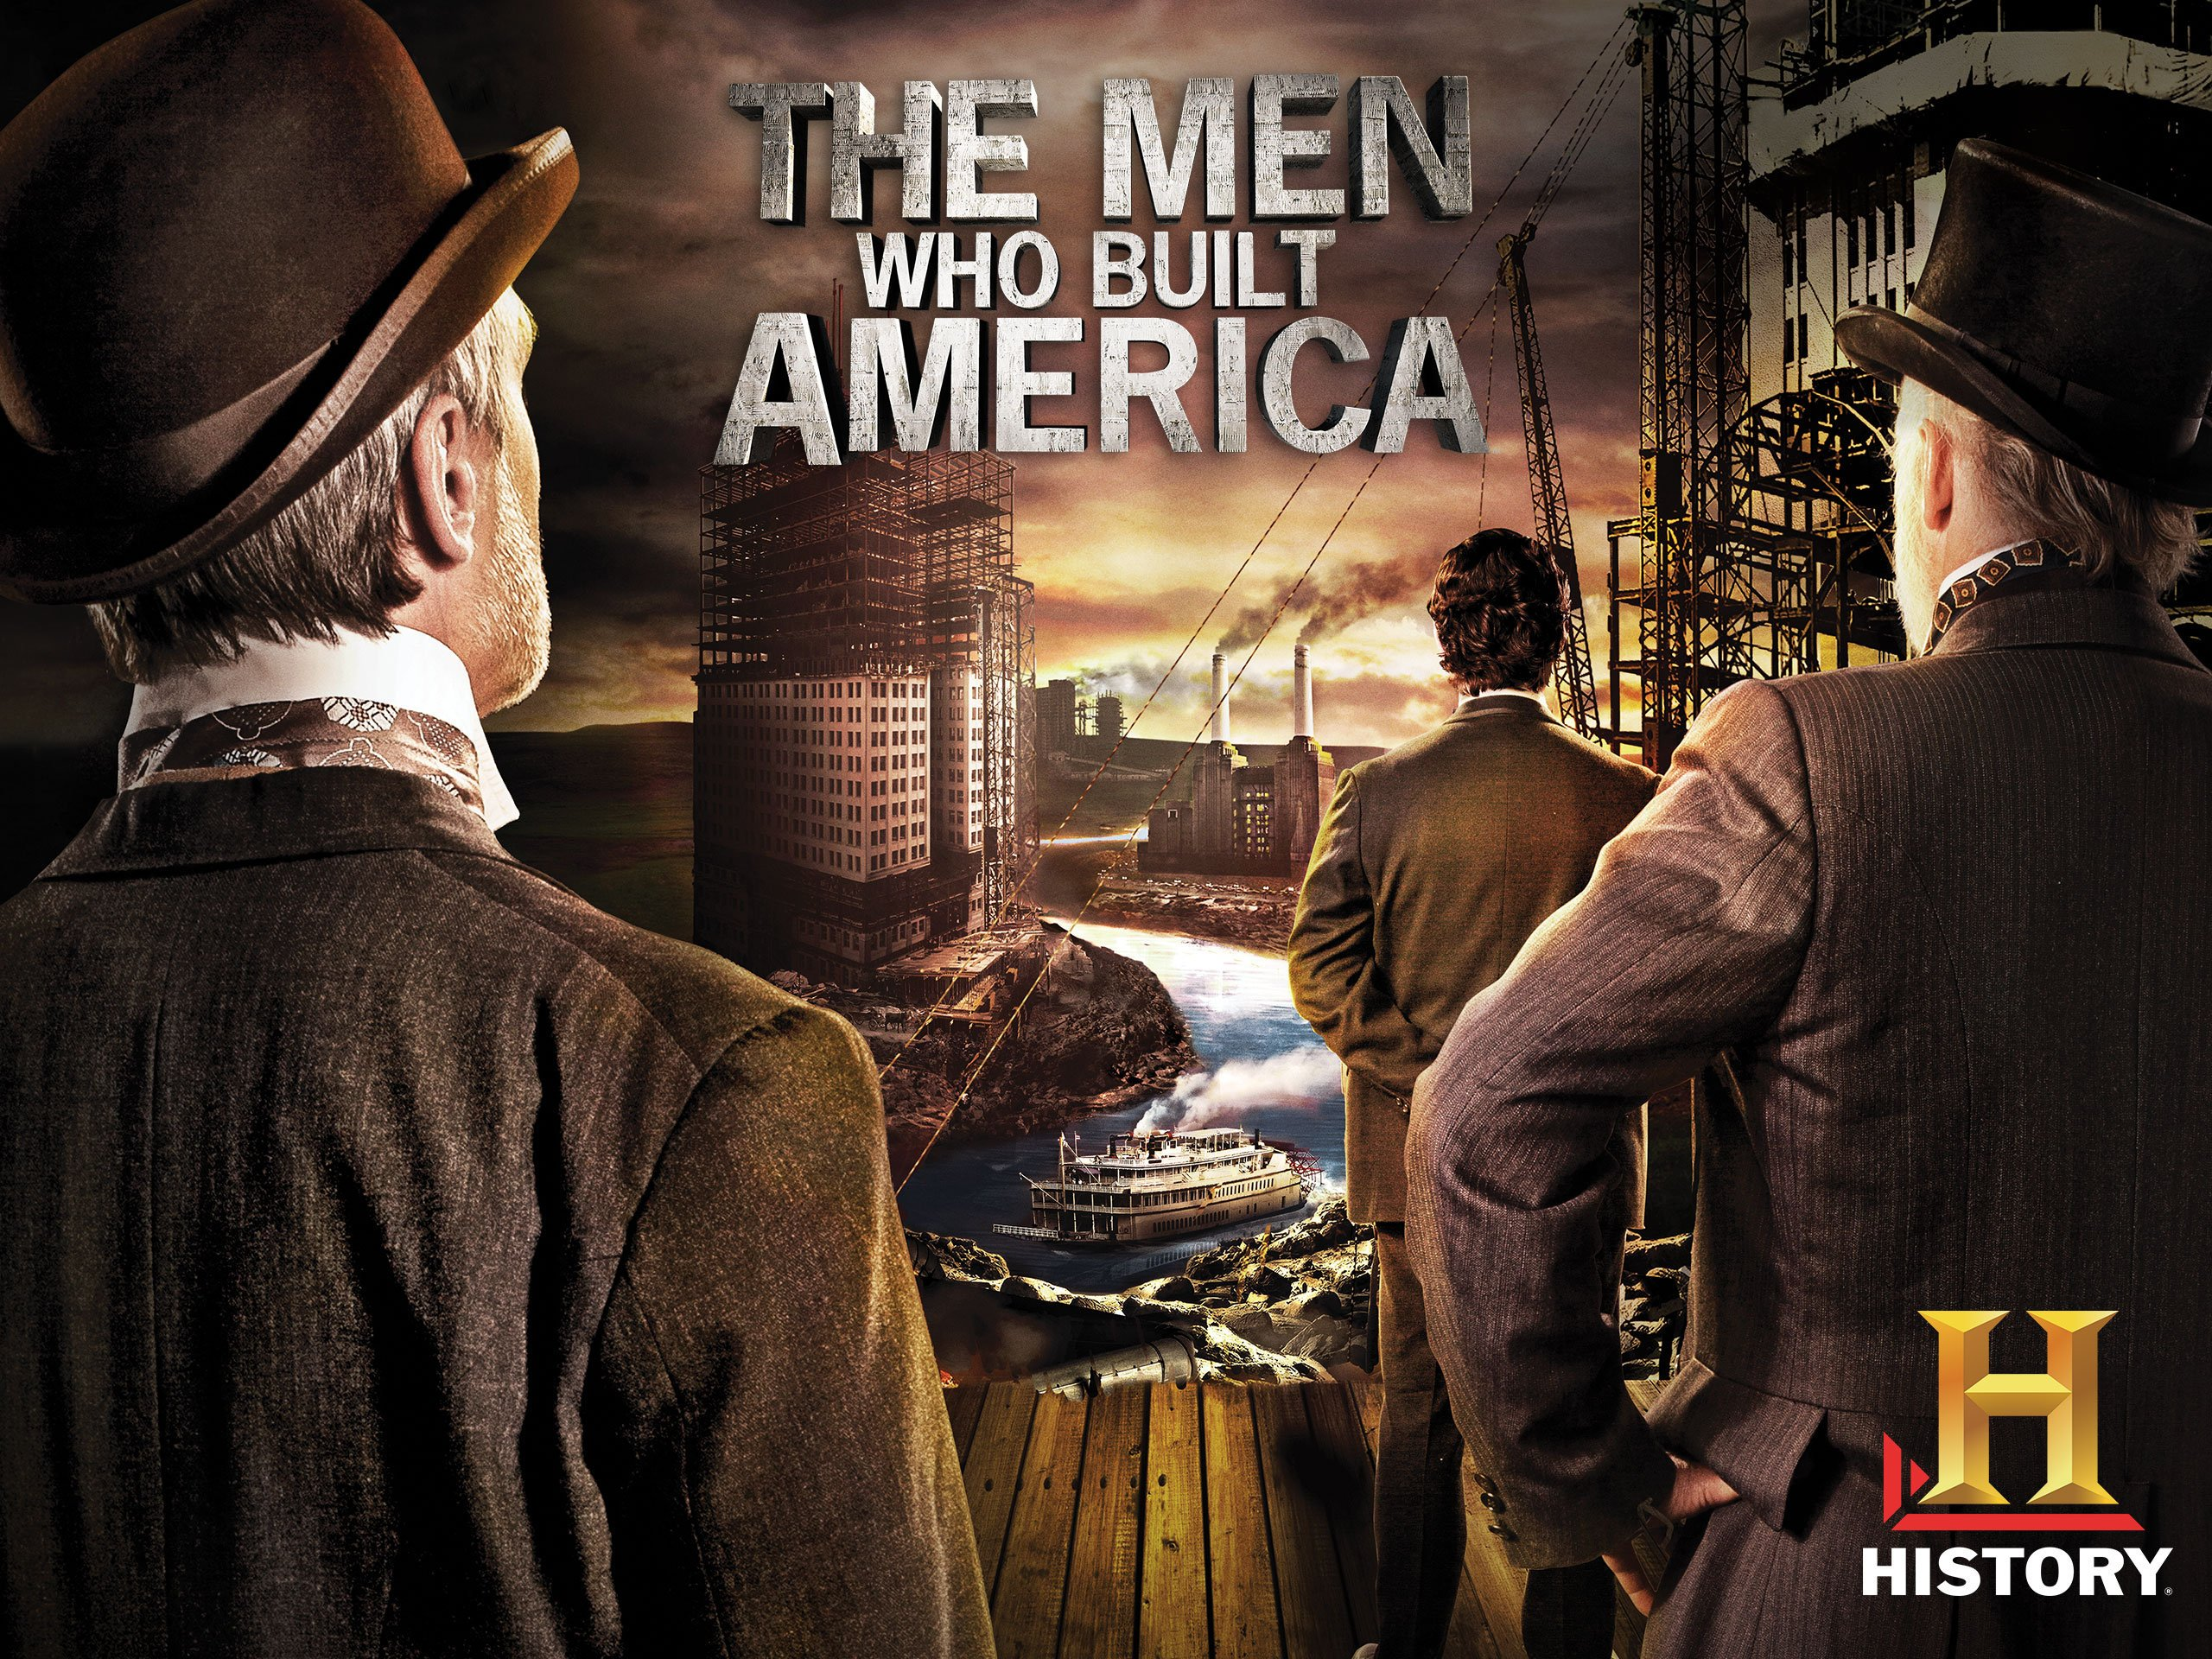 worksheet The Men Who Built America Worksheet amazon com the men who built america season 1 digital services llc